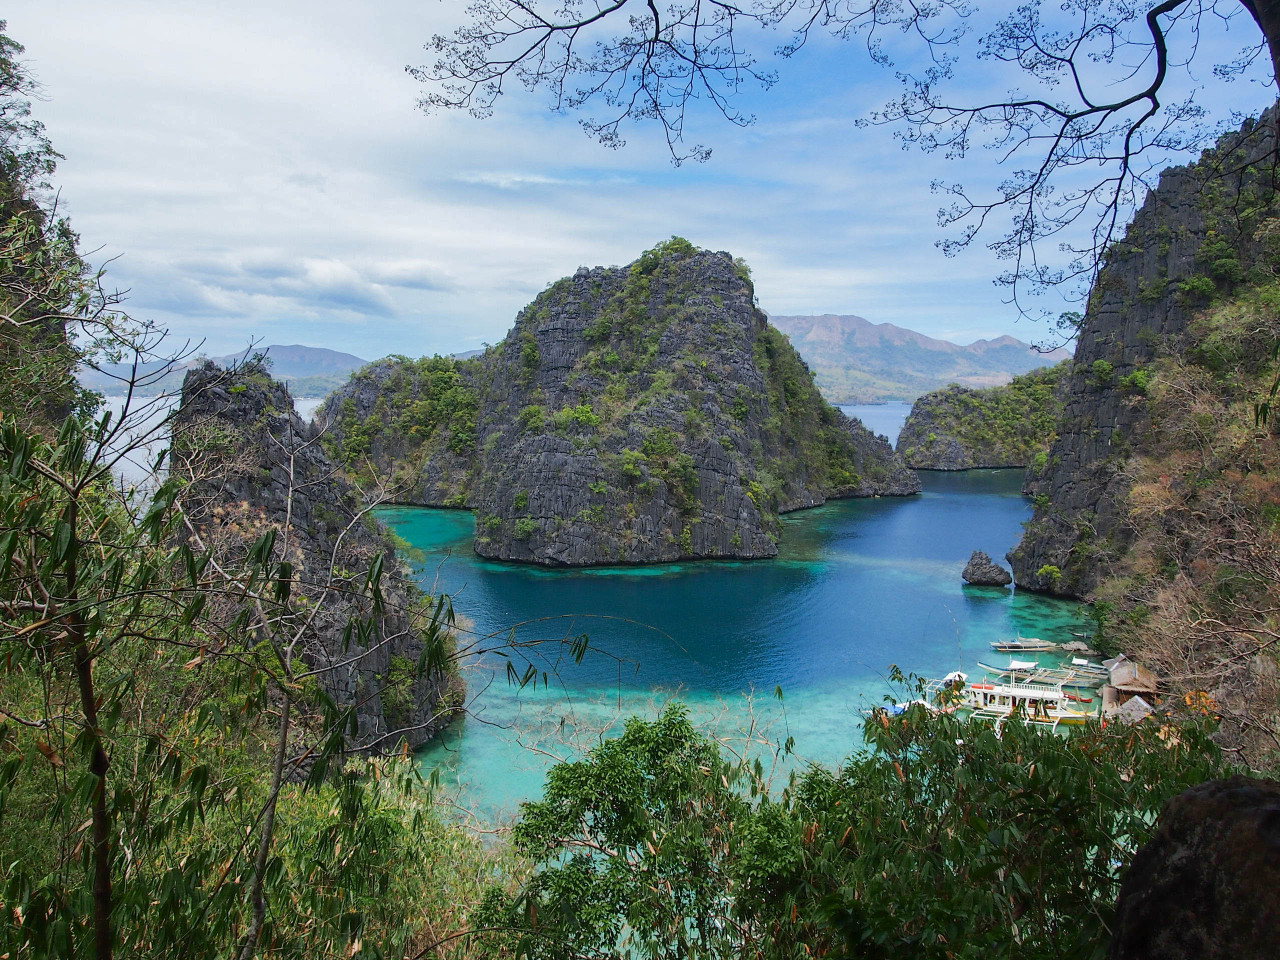 Coron Island, Palawan, Philippines by Samantha Craven Apologies for not posting or answering your questions in a while. I've been in Coron to be a speaker for Green Fins at a Sustainable Tourism workshop run by the Coron Initiative.  It's been an awesome few days, learning, networking, and getting distracted by the view. Updates to follow!